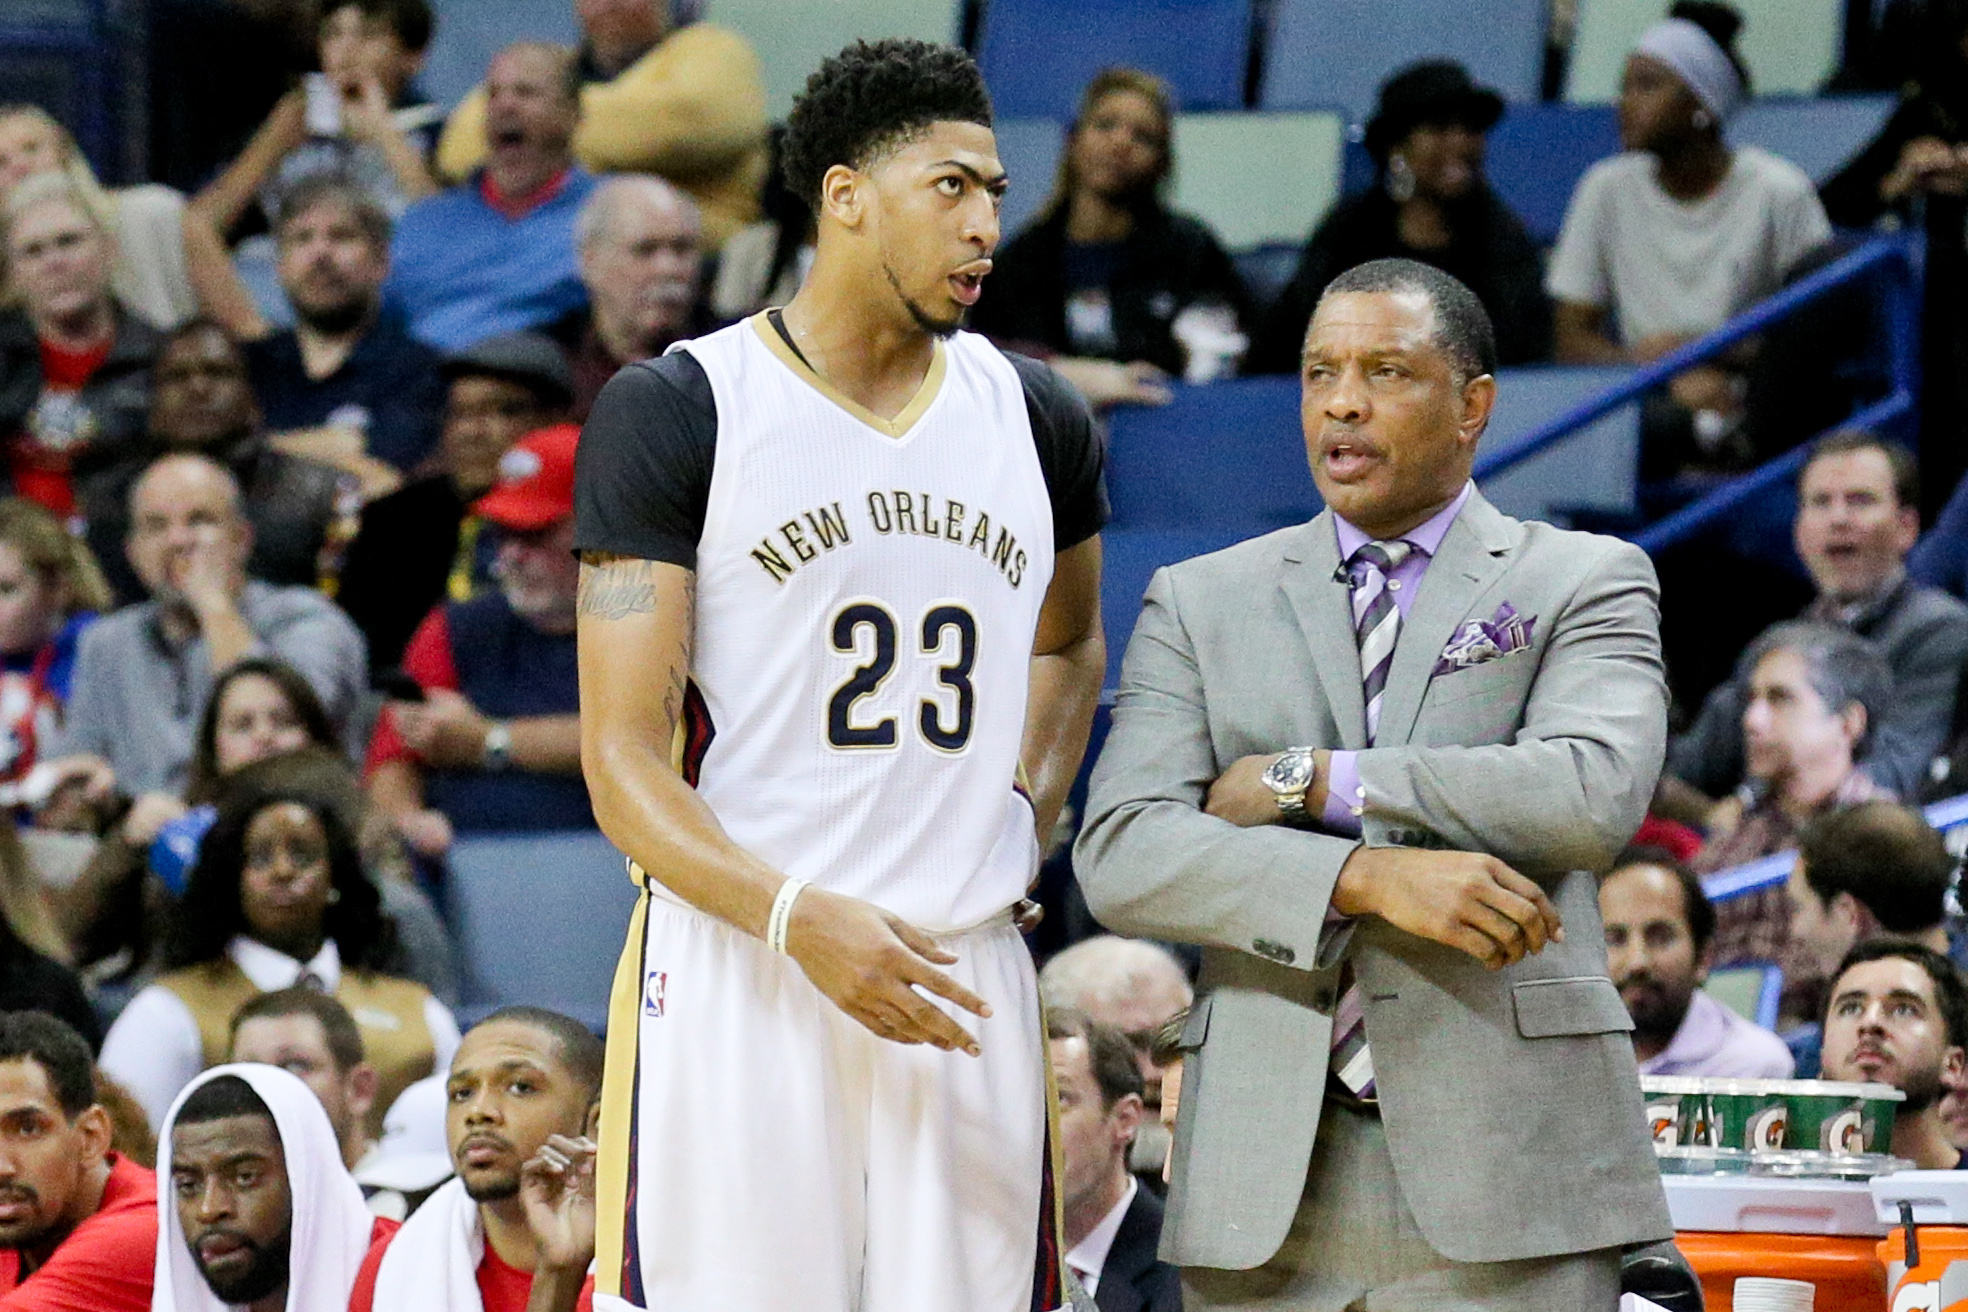 """""""Hey coach, what about if we ran some PnR to get me dunks and layups instead?"""""""